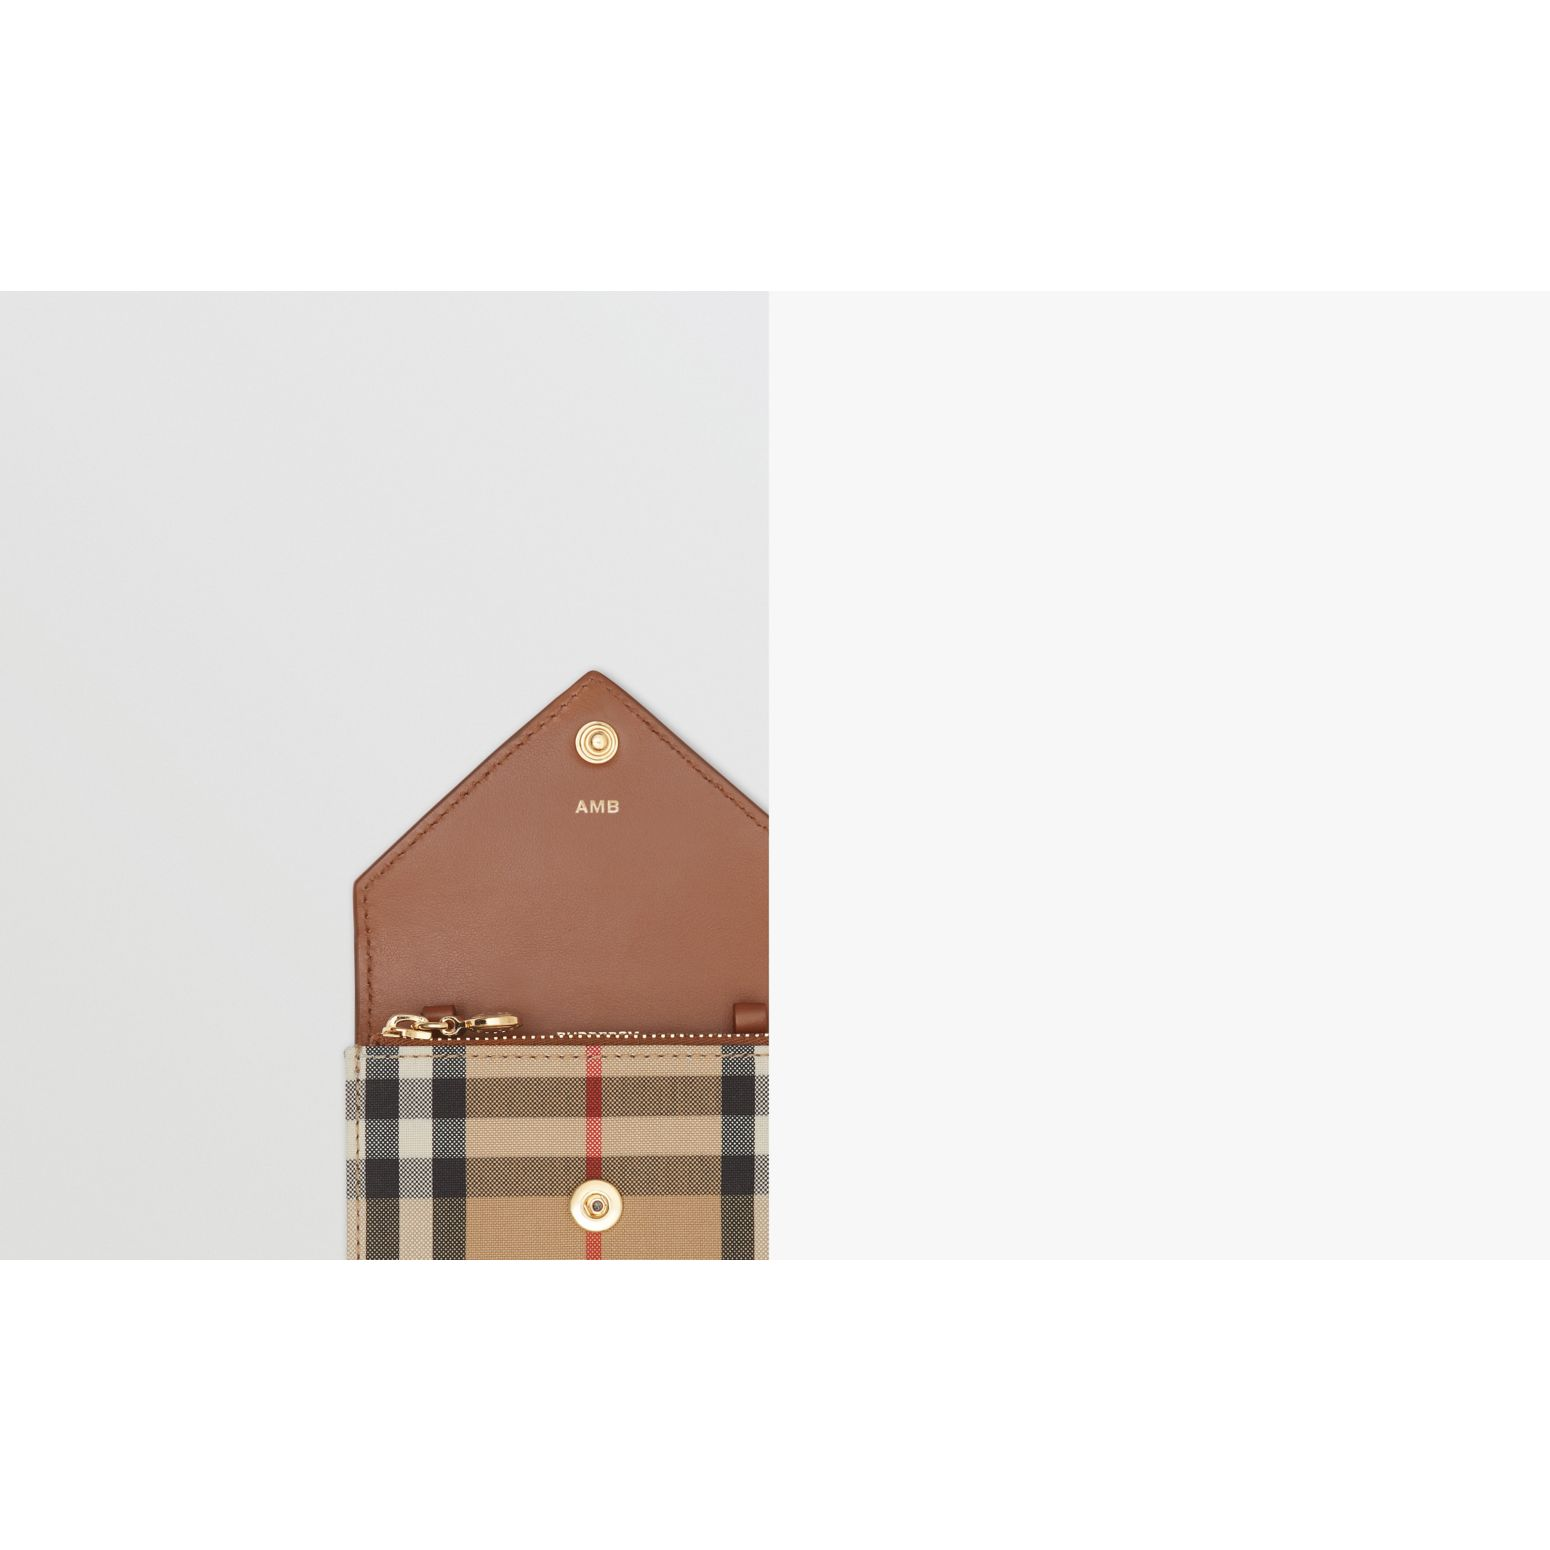 Vintage Check and Leather Card Case with Strap in Tan - Women | Burberry - gallery image 1